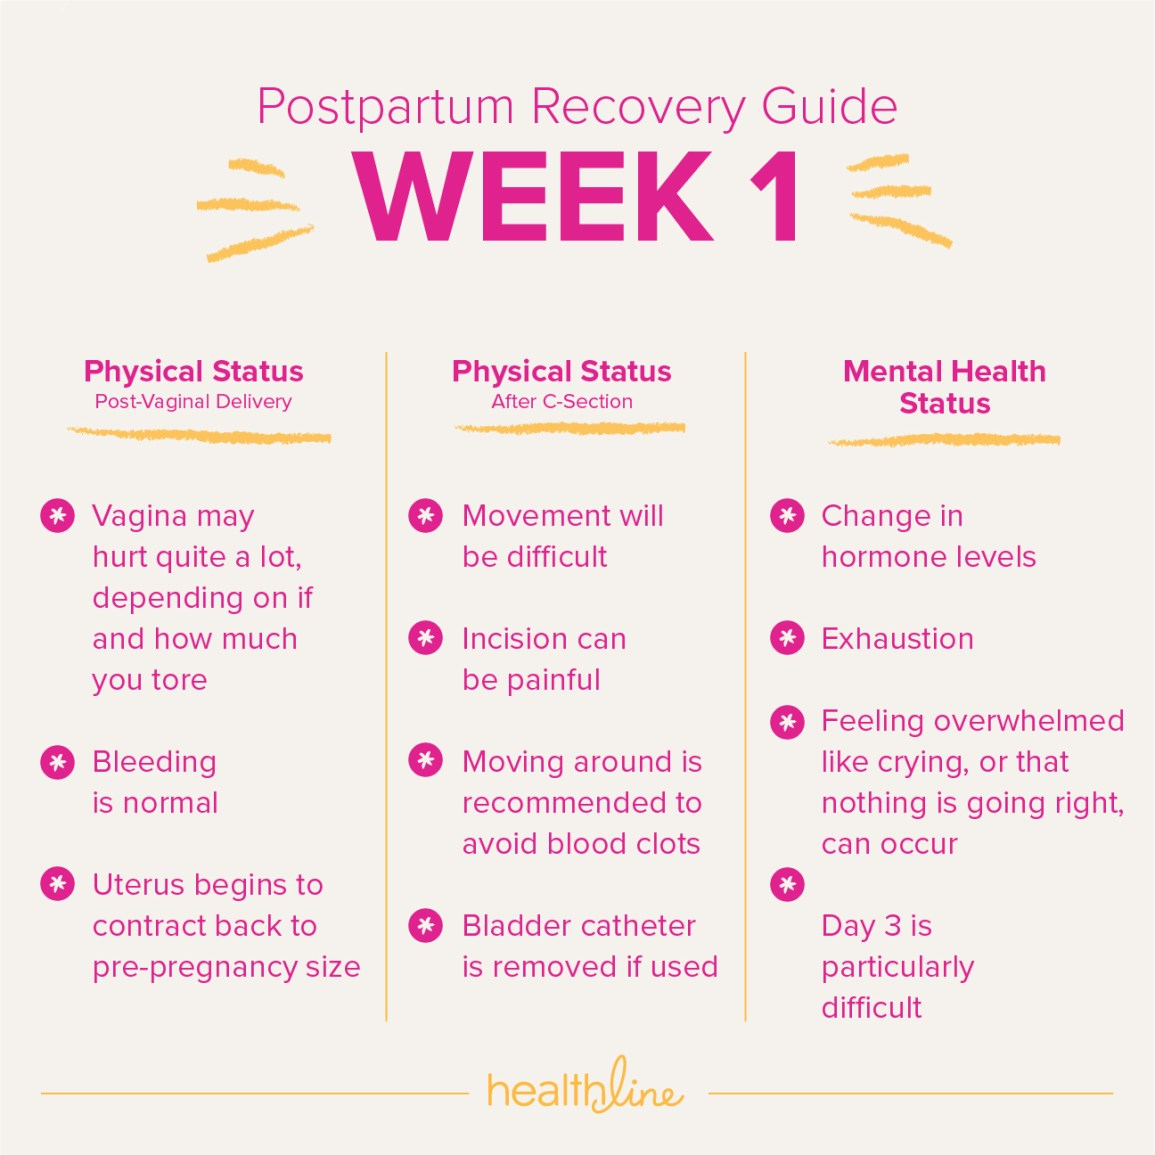 postpartum recovery guide